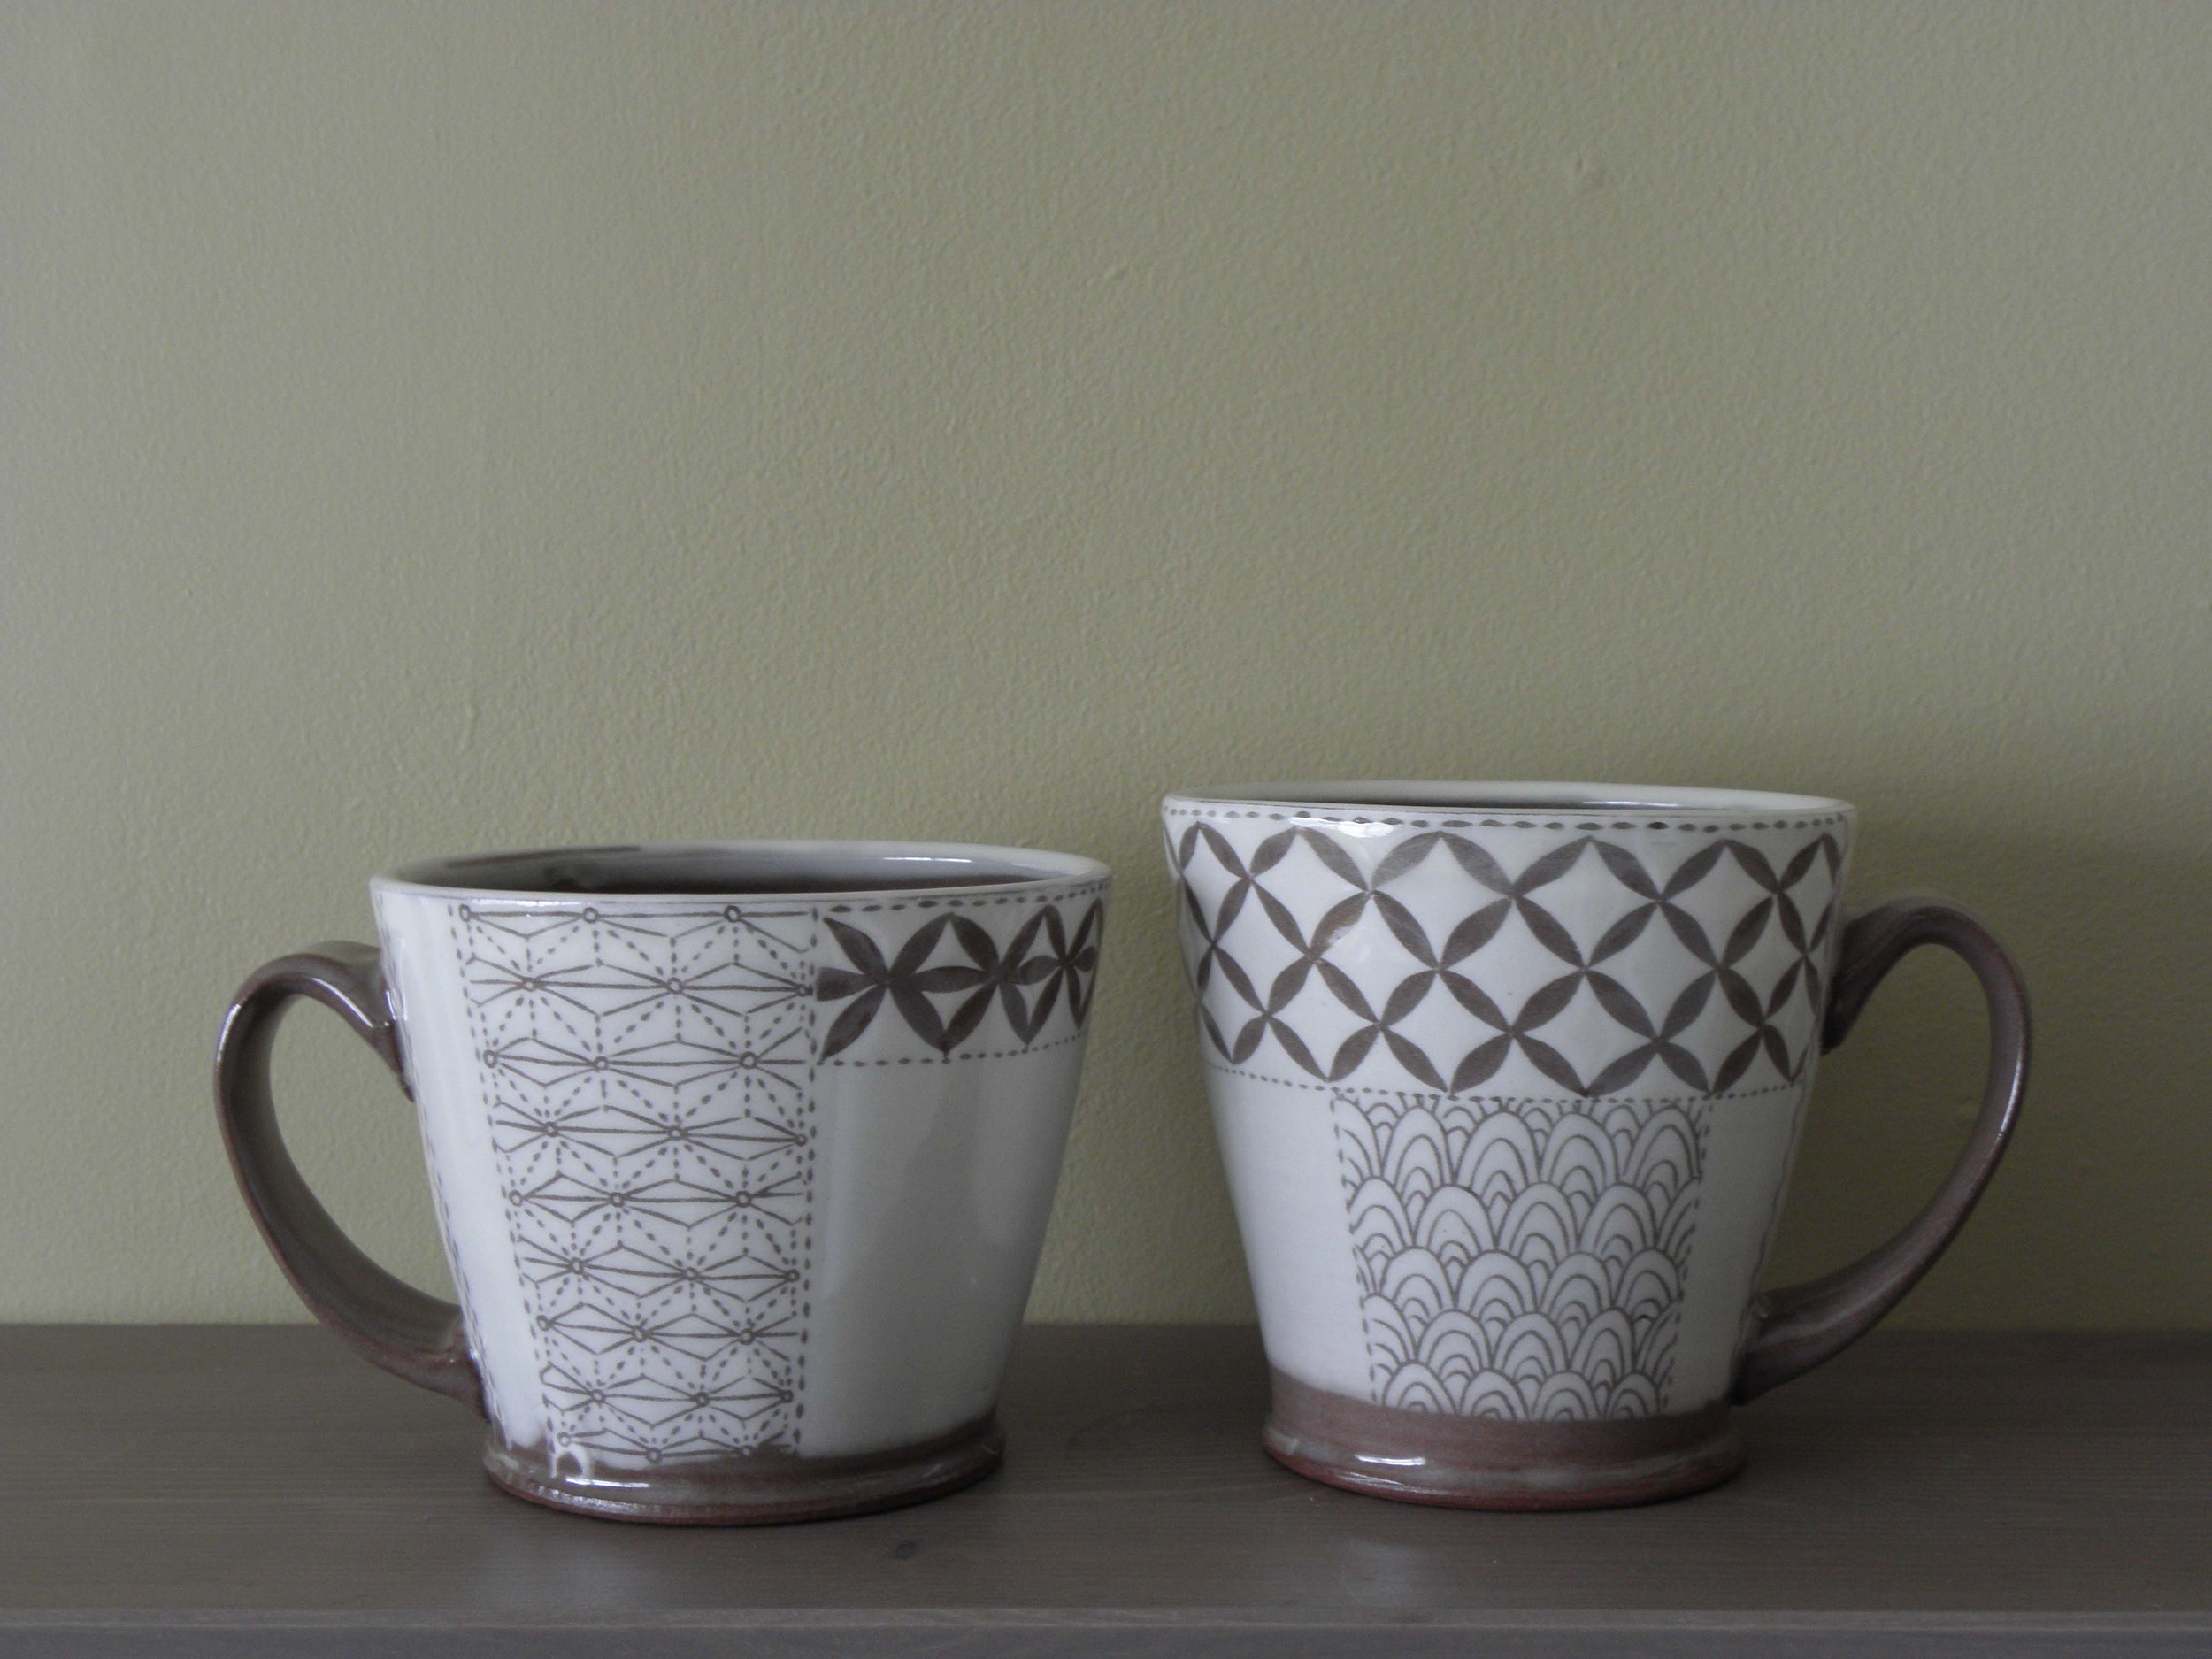 Pattern Swatch Mug Pair, indoors